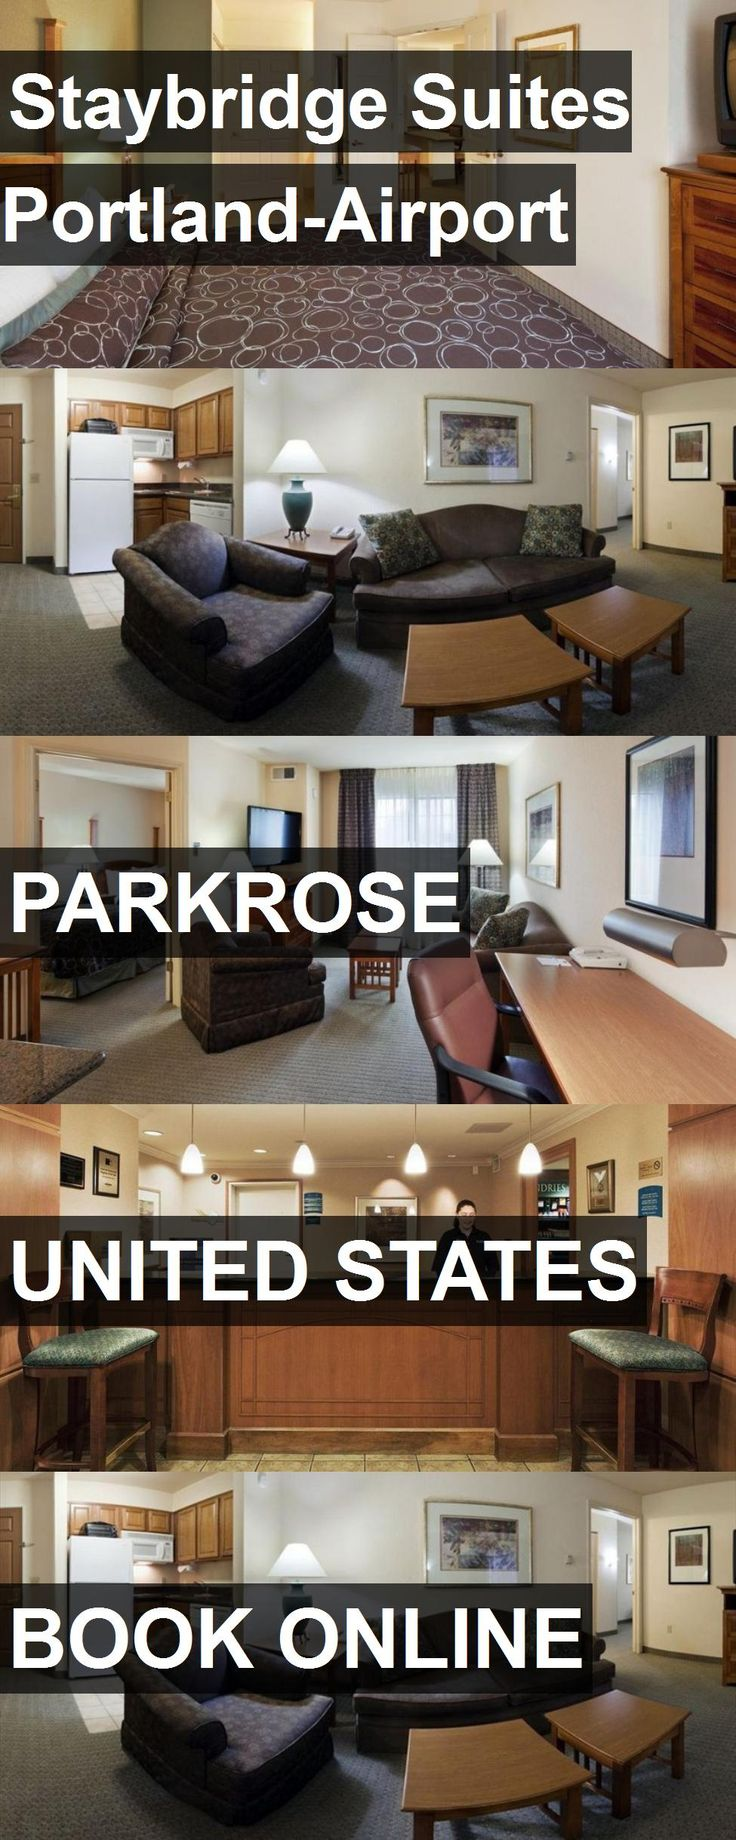 Hotel Staybridge Suites Portland-Airport in Parkrose, United States. For more information, photos, reviews and best prices please follow the link. #UnitedStates #Parkrose #StaybridgeSuitesPortland-Airport #hotel #travel #vacation